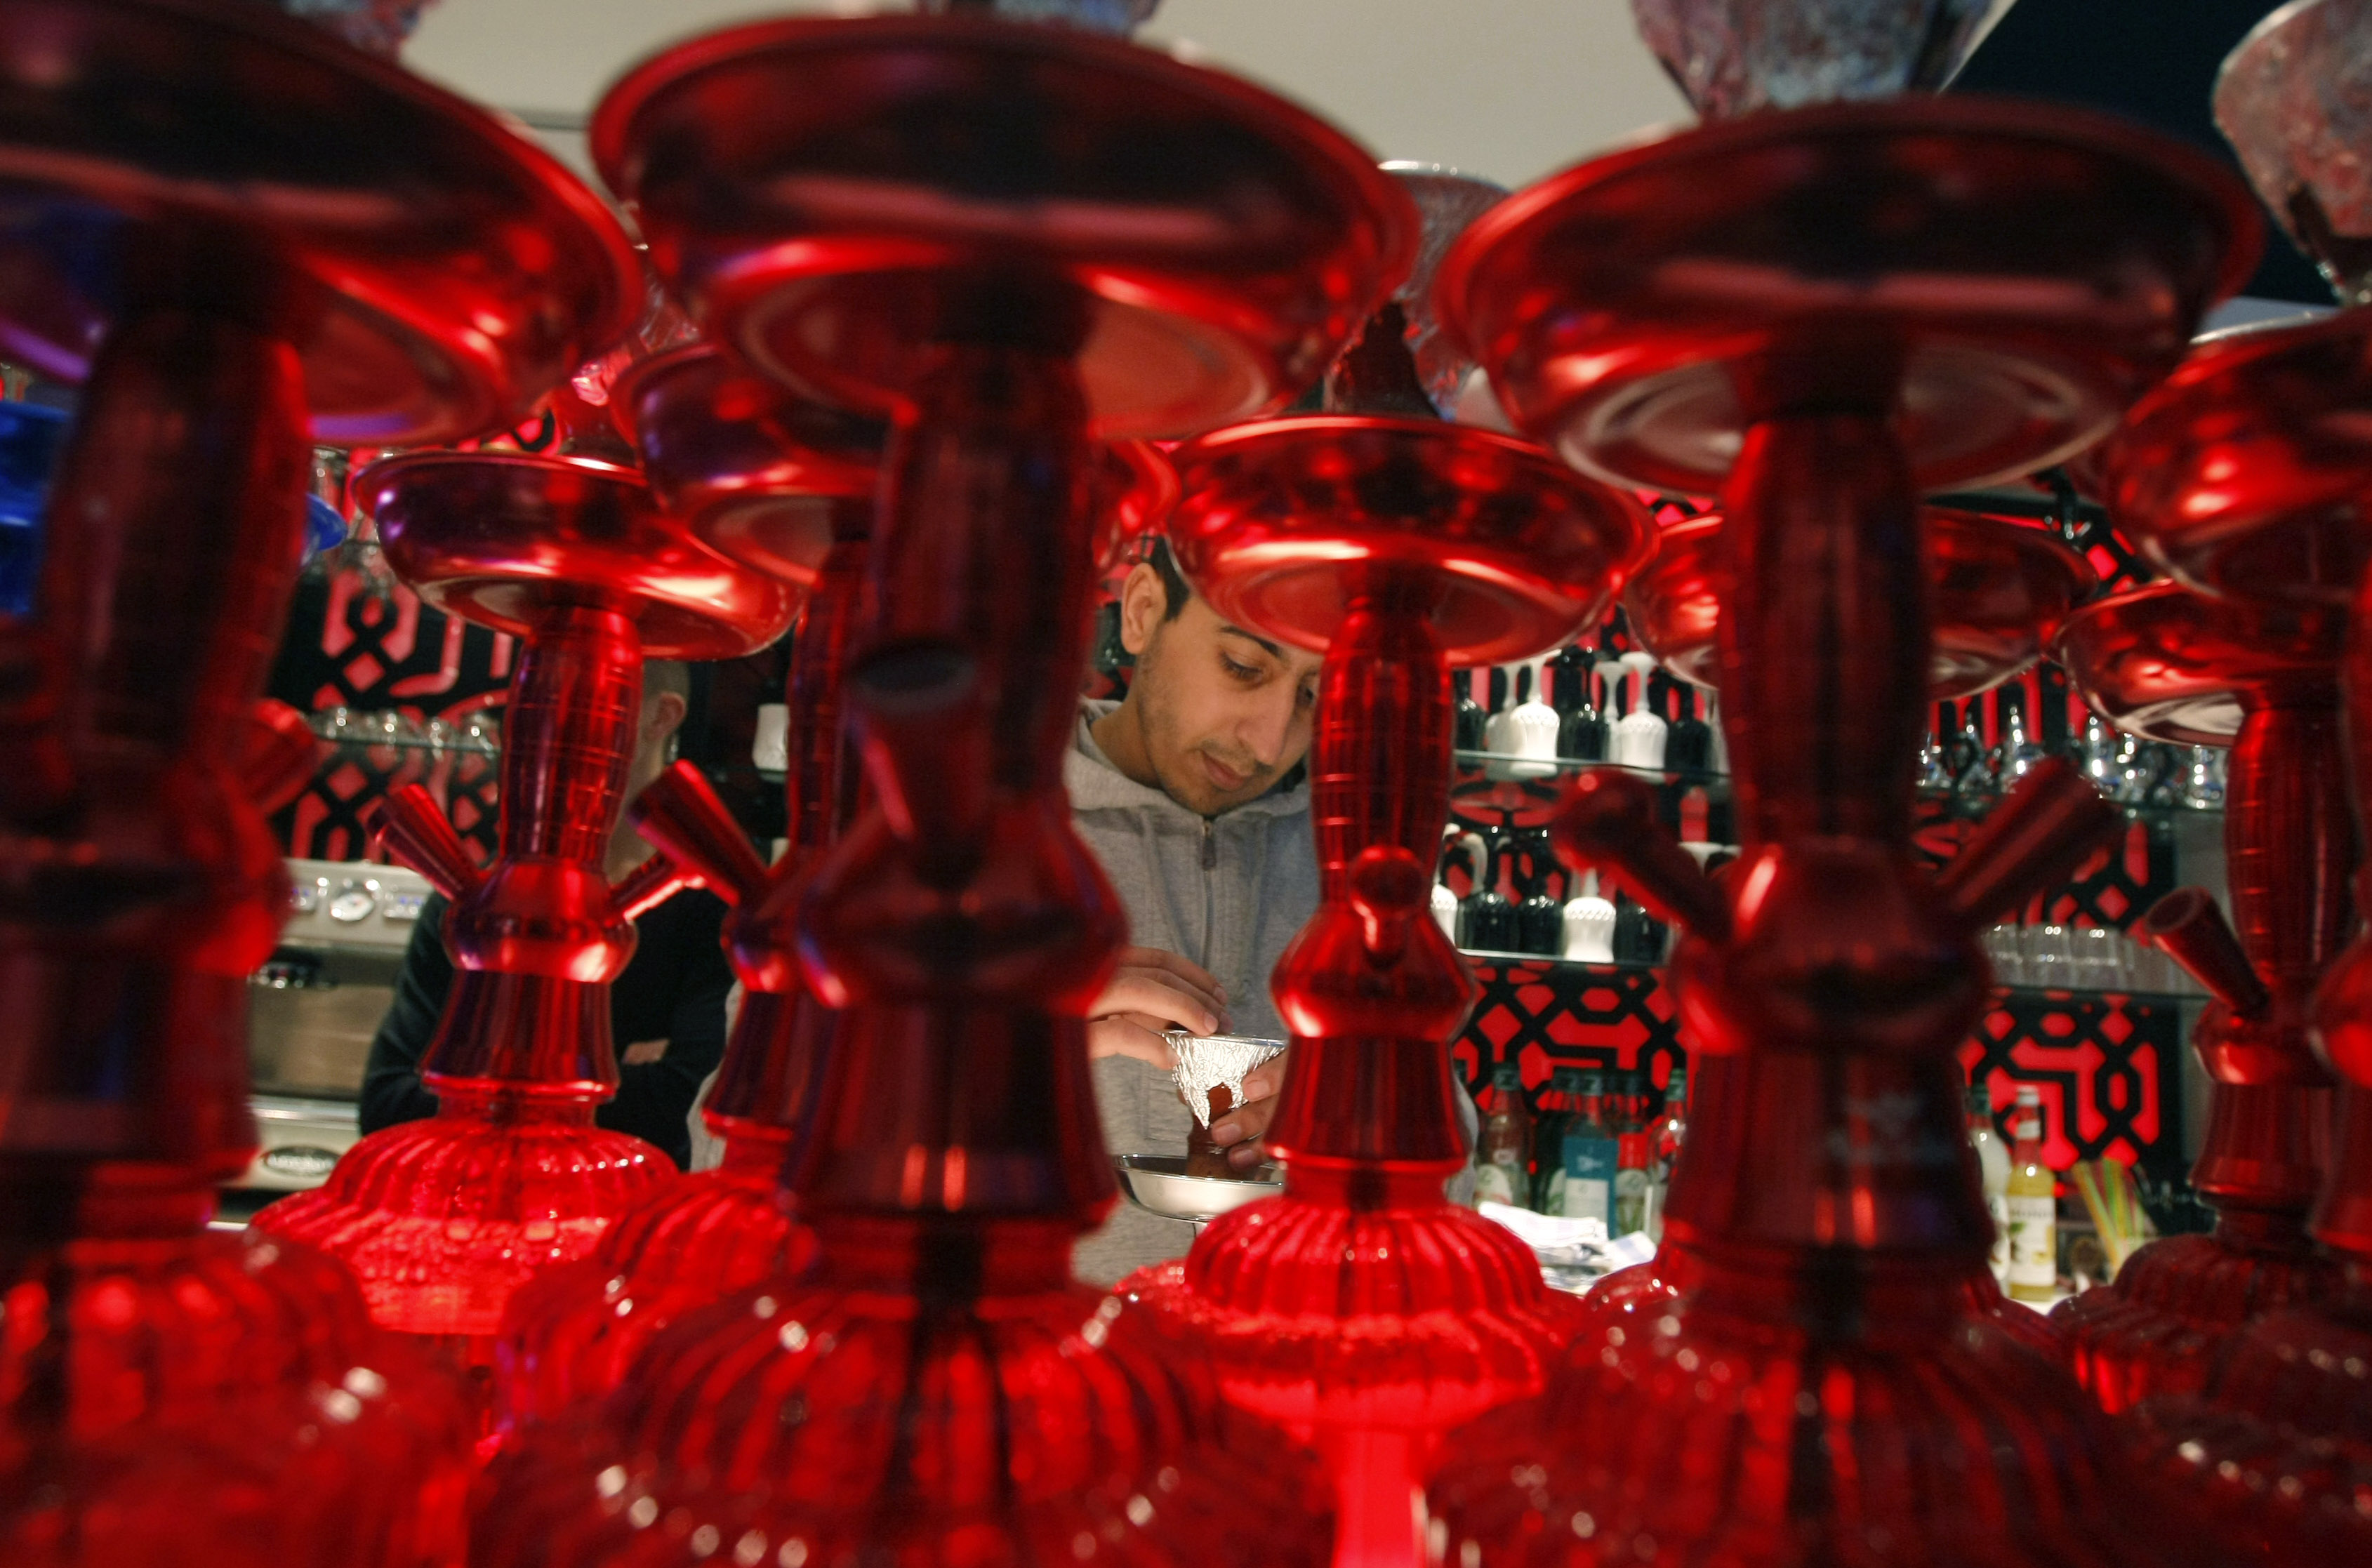 Hookah smoke carries as many, if not more, toxins than smoke from cigarettes.